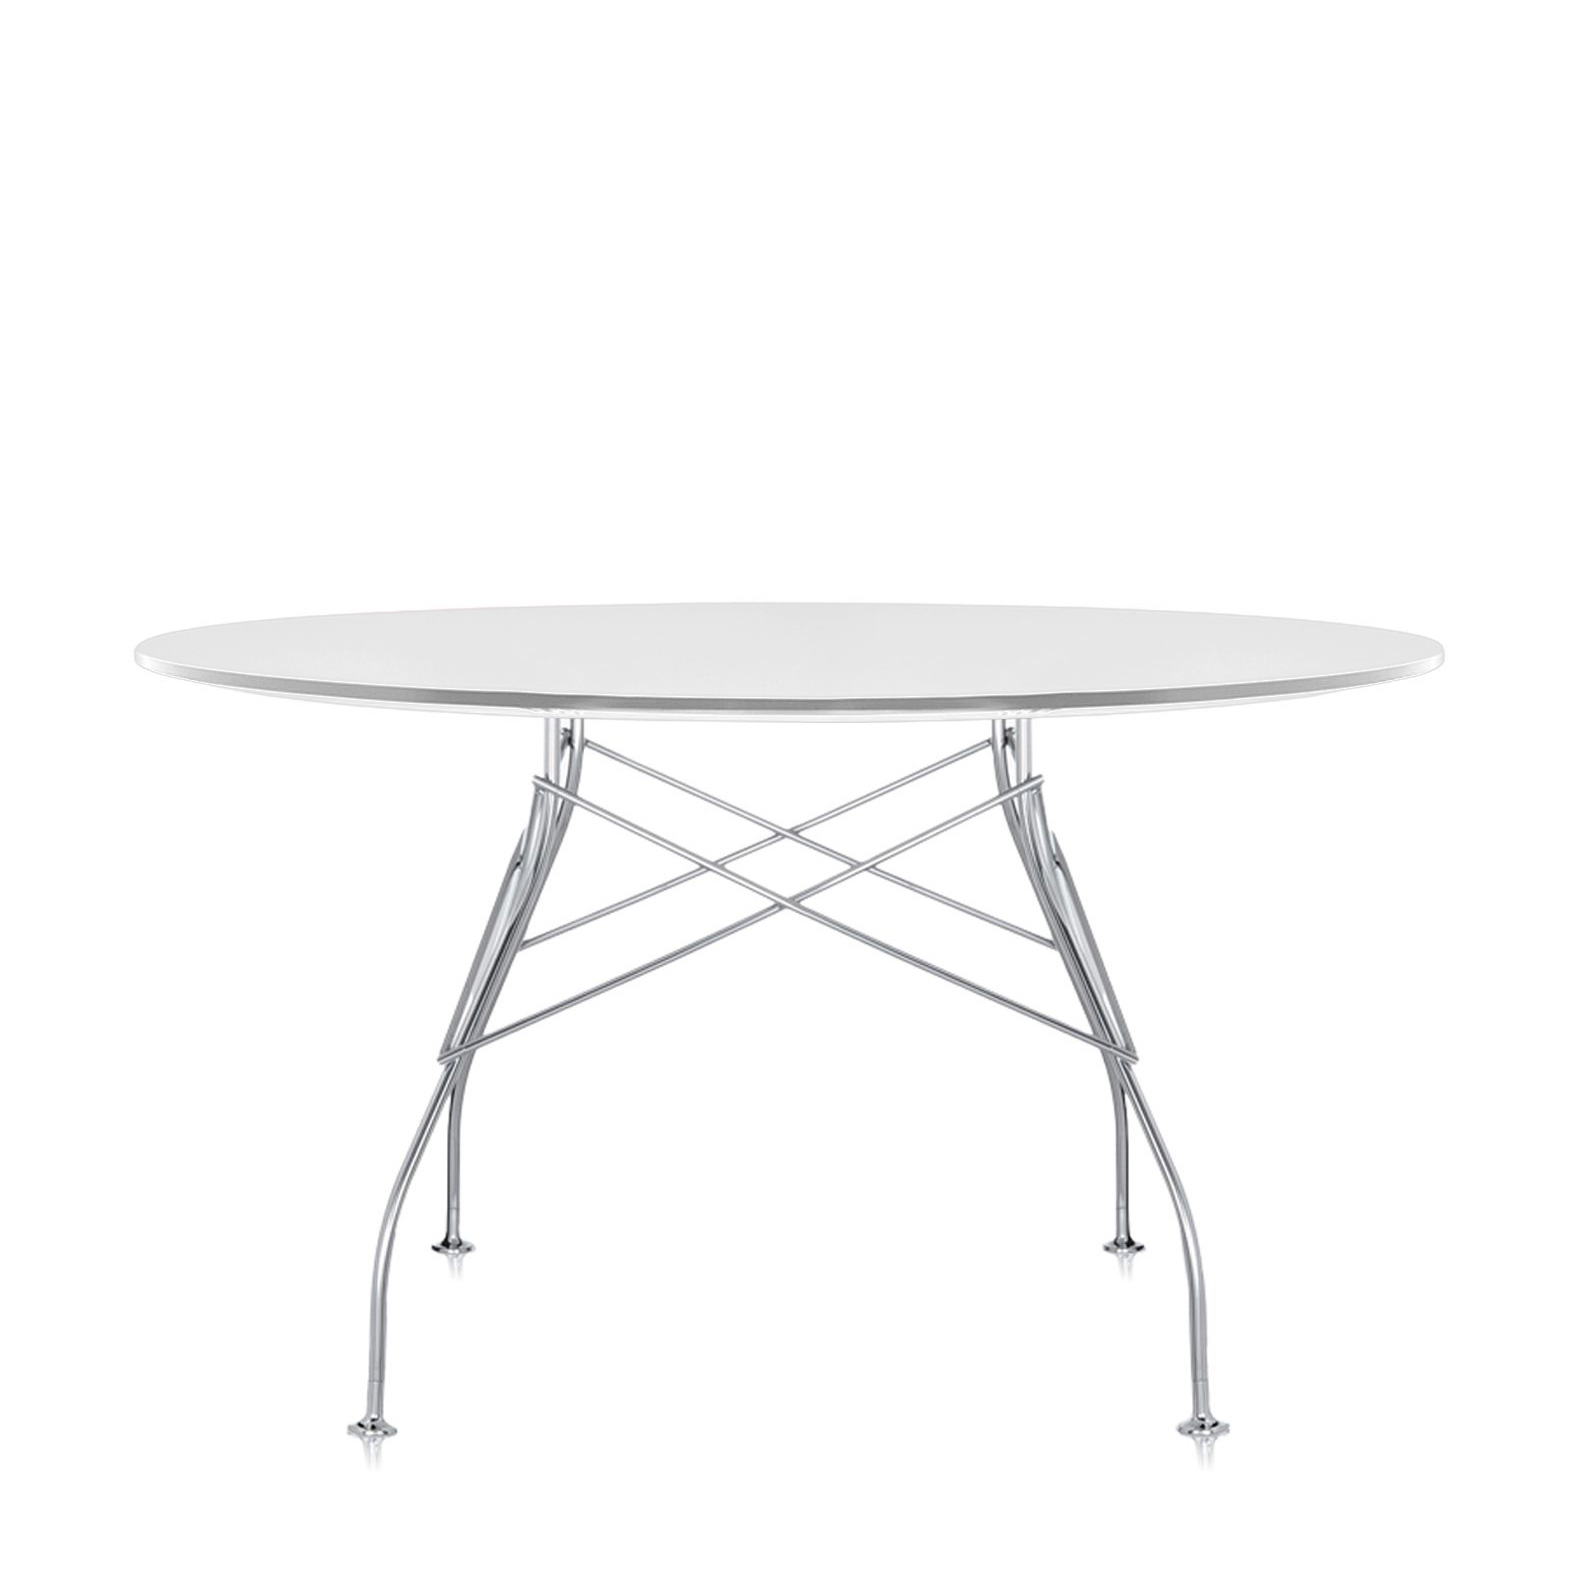 Kartell Glossy Round Table Versatile Table for the Home Office